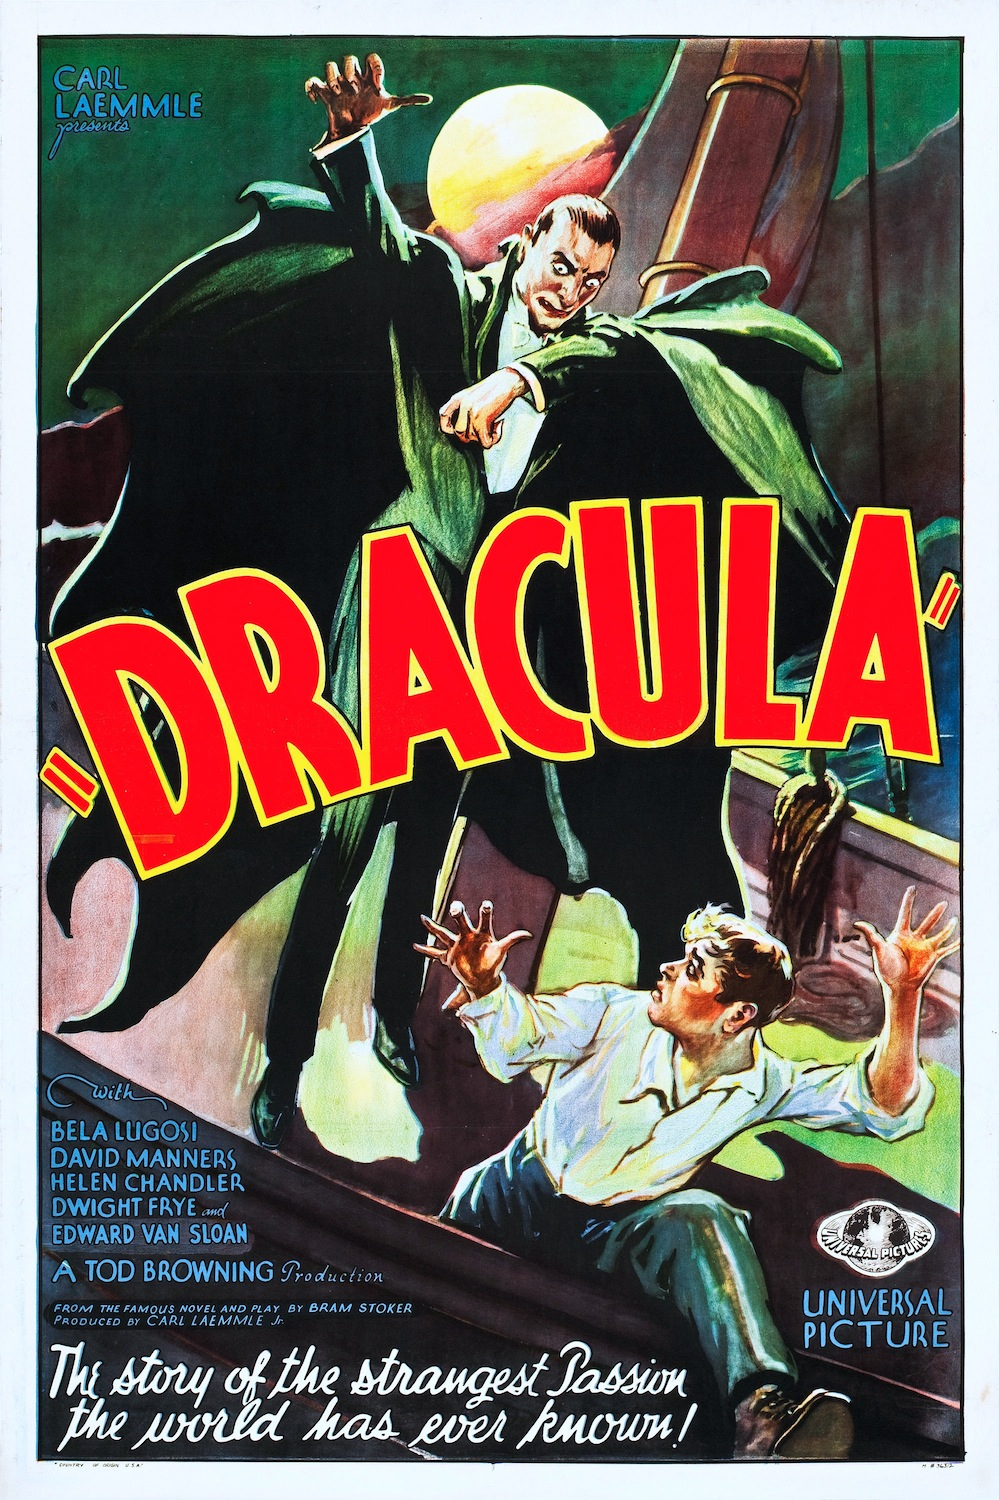 dracula 1931 englishlanguage film wikipedia